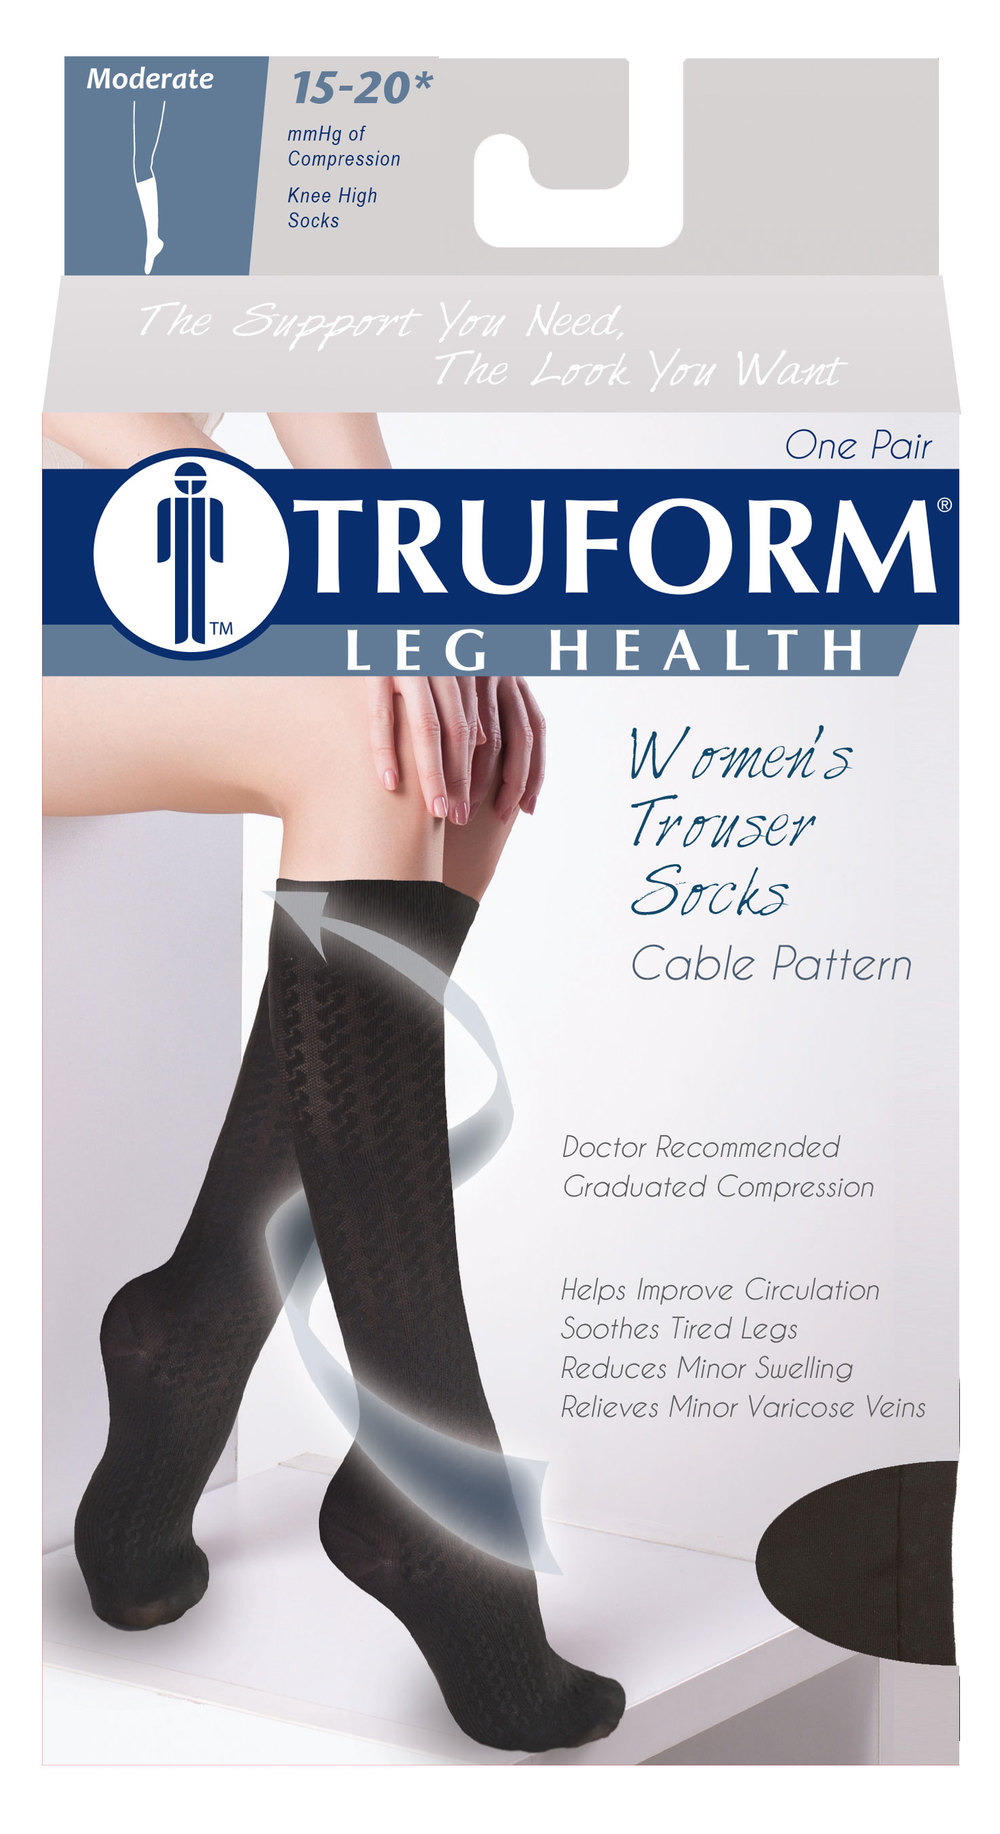 Truform, 1975, Compression, 15-20 mmHg, Cable Pattern, Package